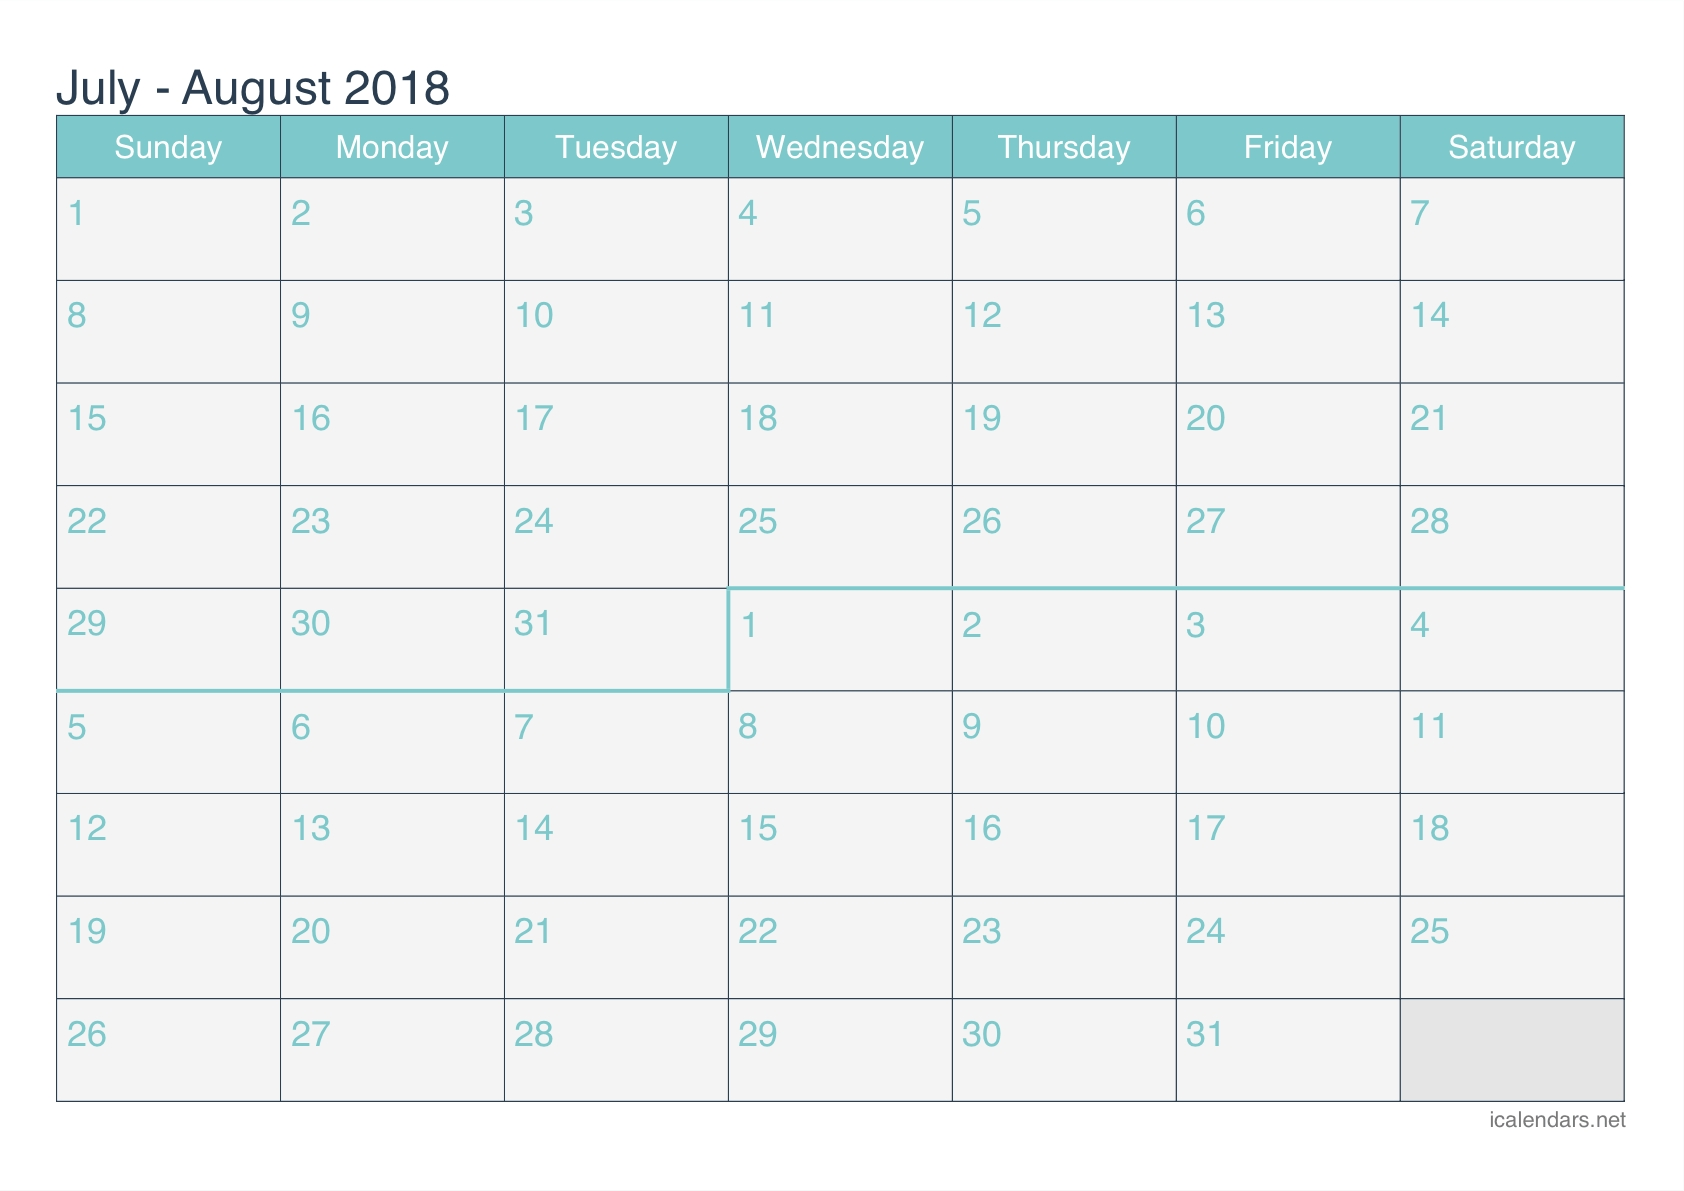 July And August 2018 Printable Calendar - Icalendars inside July And August Blank Calendar